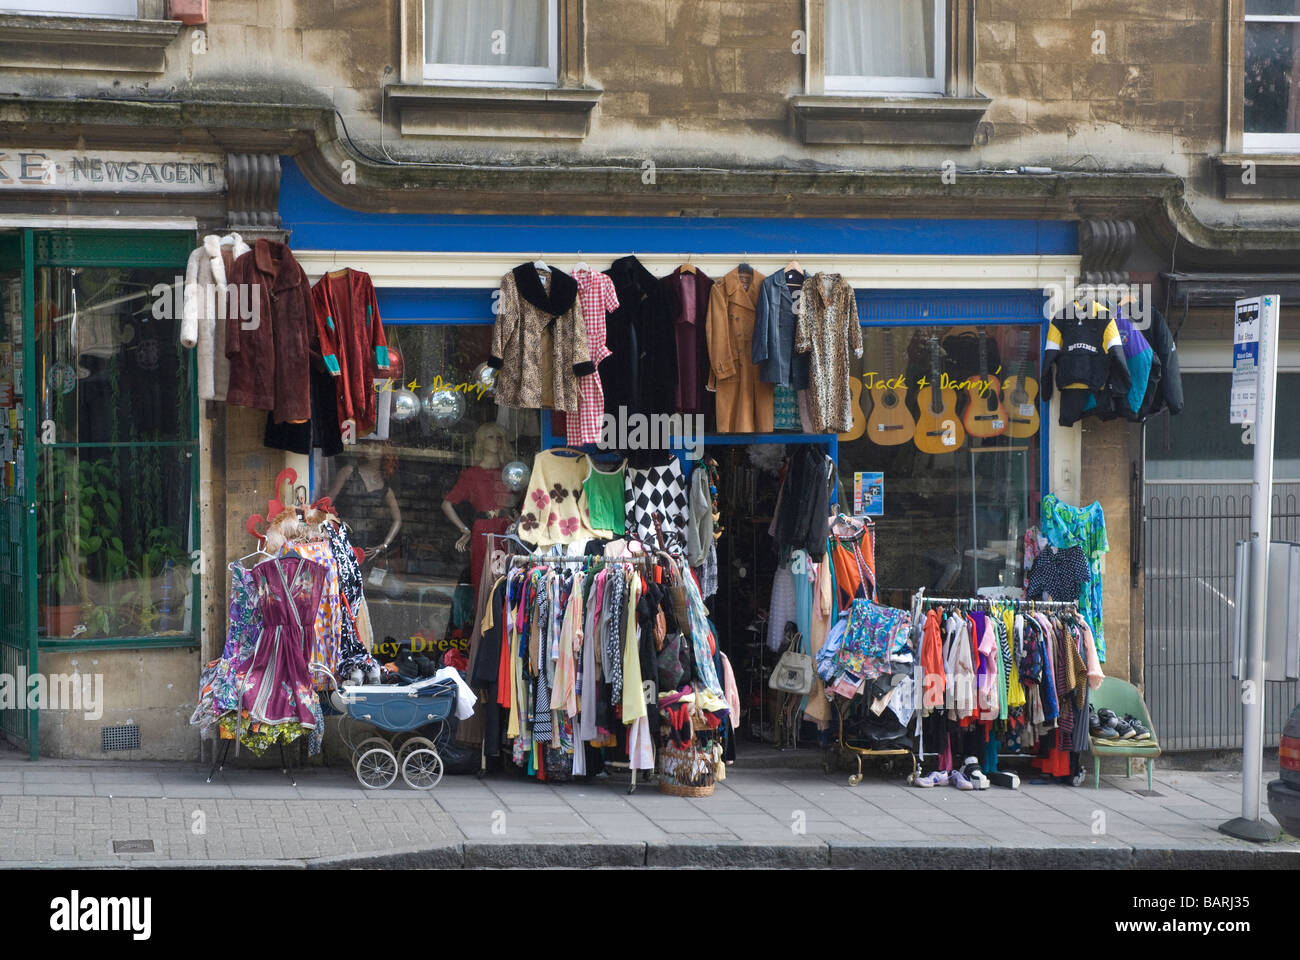 Secondhand clothes shop, 'Walcot Street' 'Bath Spa' Somerset UK - Stock Image